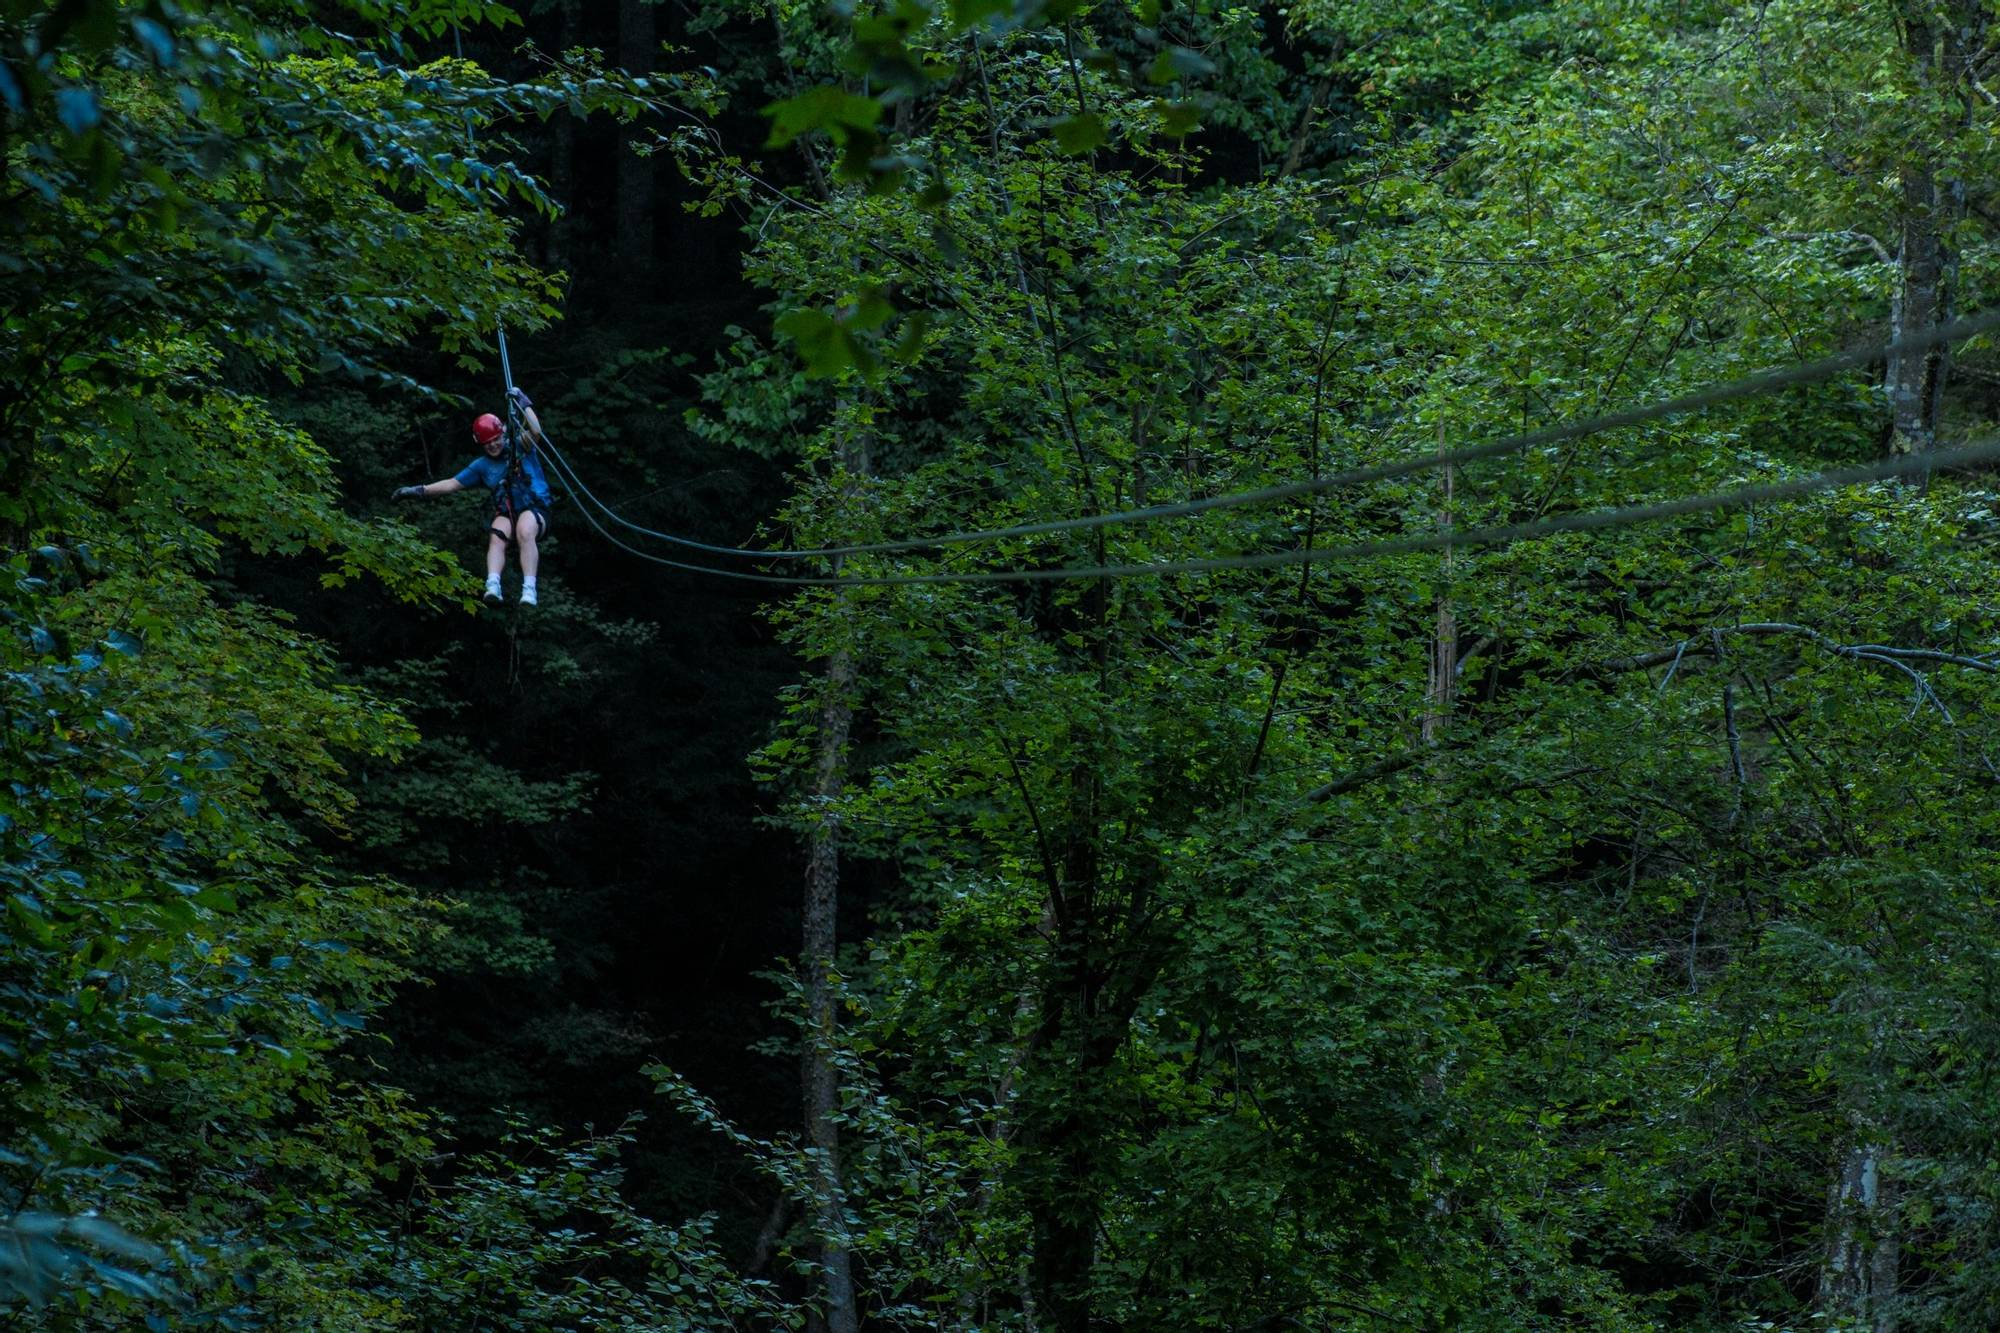 Adventures on the Gorge treetops